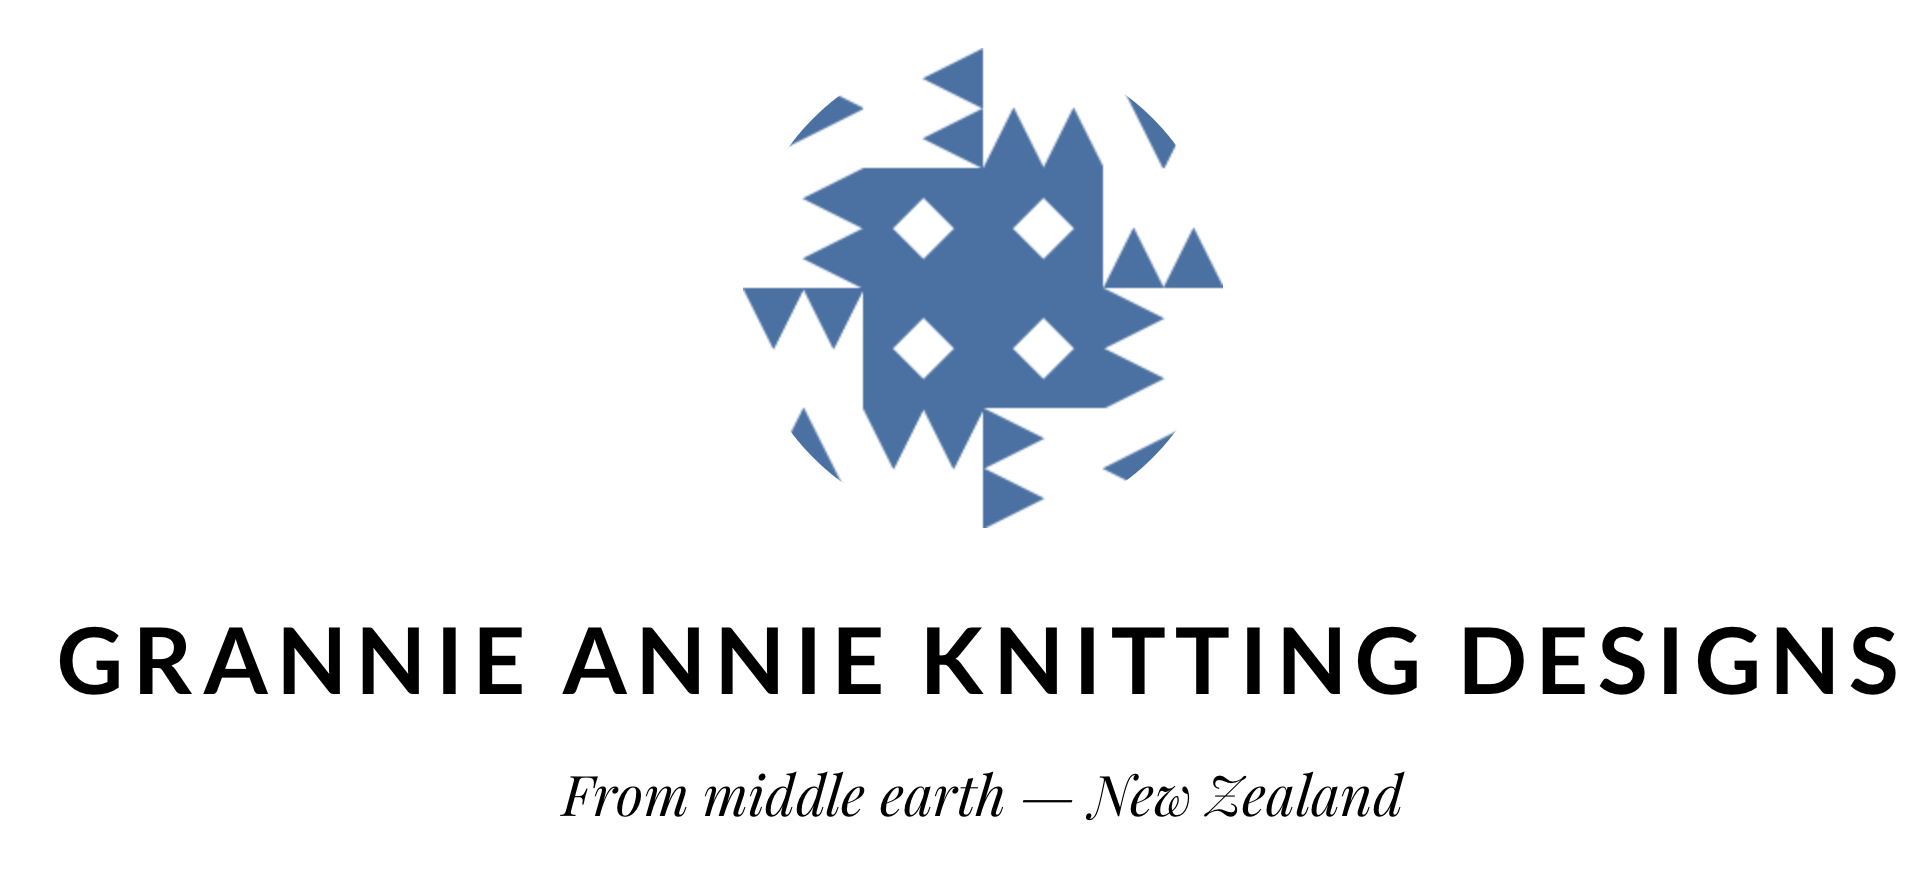 Grannie Annie Knitting Designs